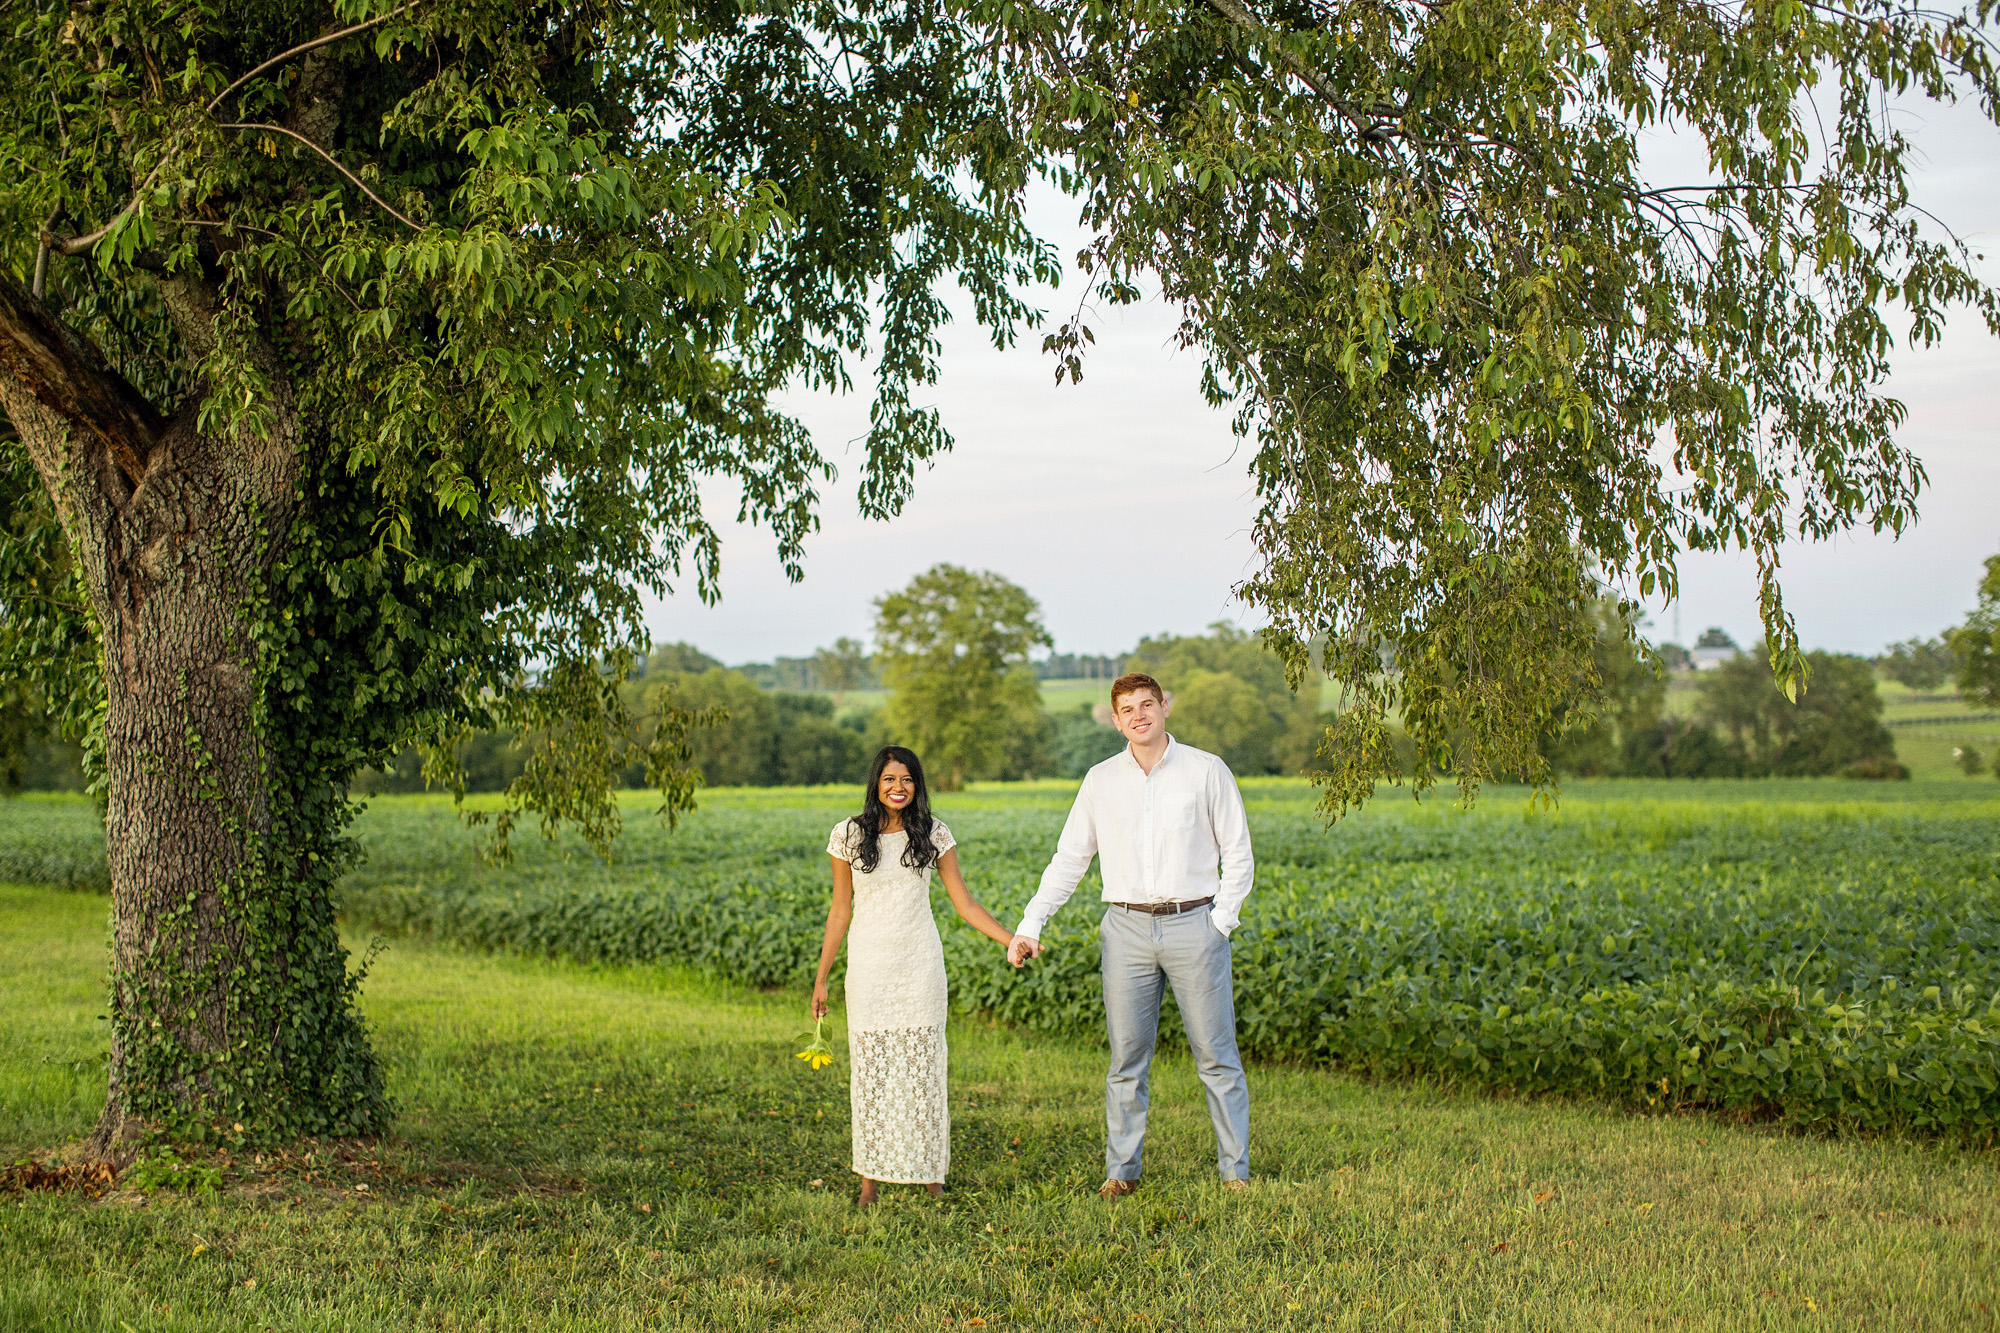 Seriously_Sabrina_Photography_Lexington_Midway_Kentucky_Engagement_Merefield_Sunflowers_Naz_and_Drew25.jpg